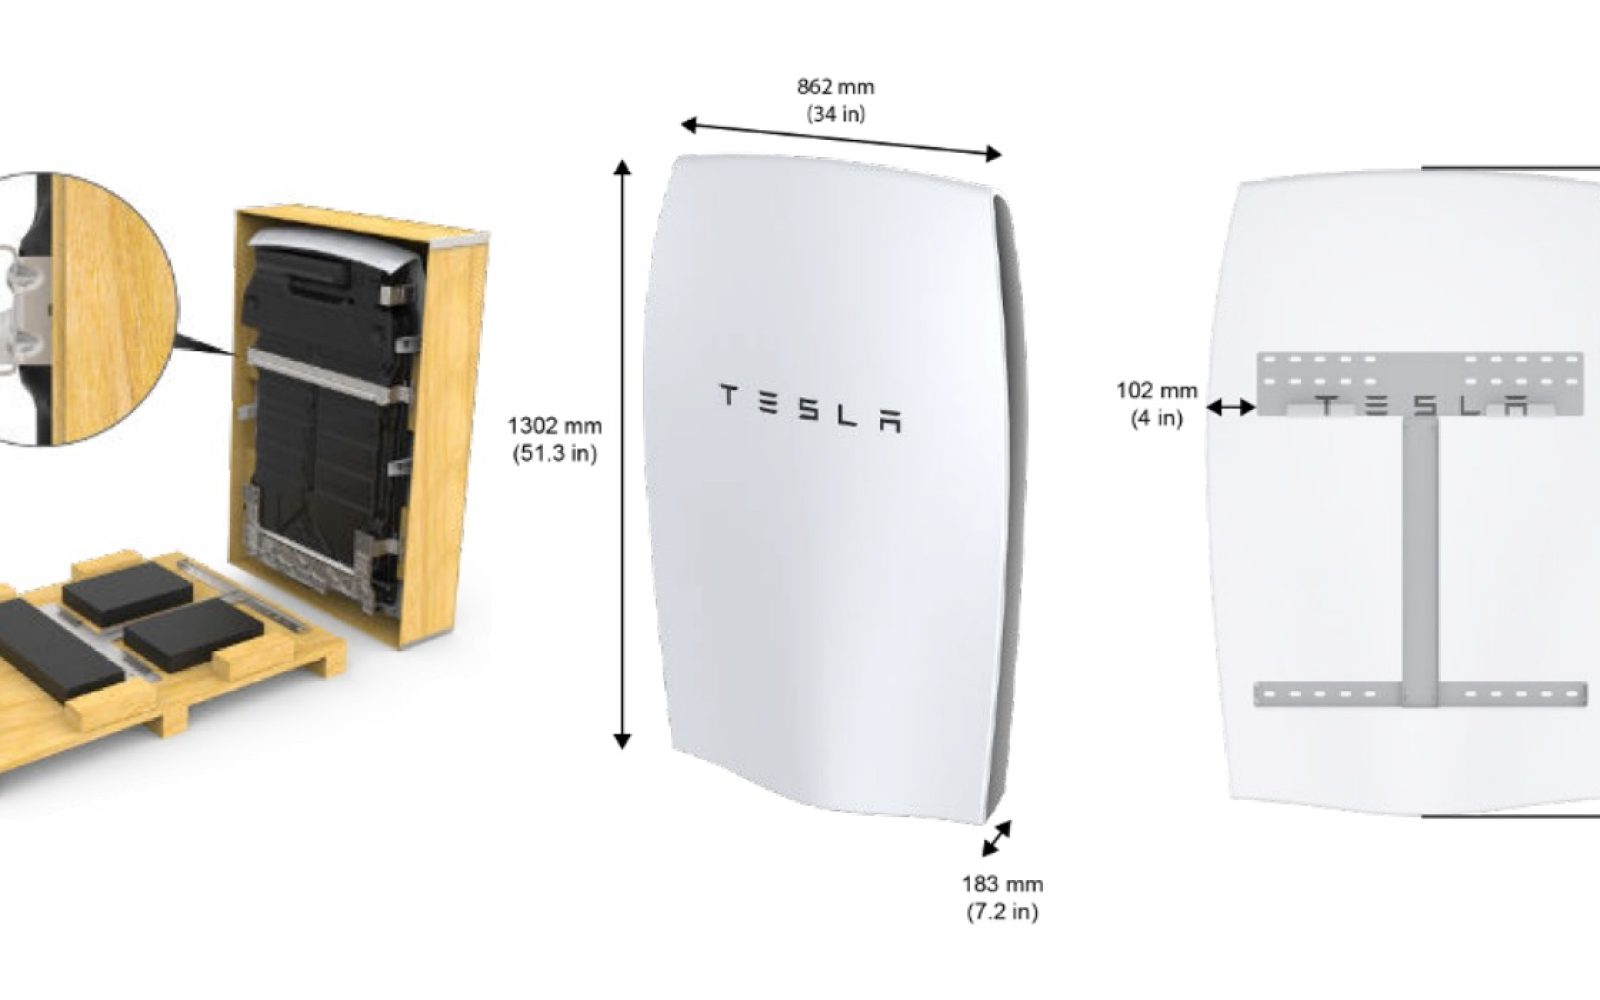 How To Install A Tesla Powerwall Step By Instructions Electrek Wiring Diagram For Model S